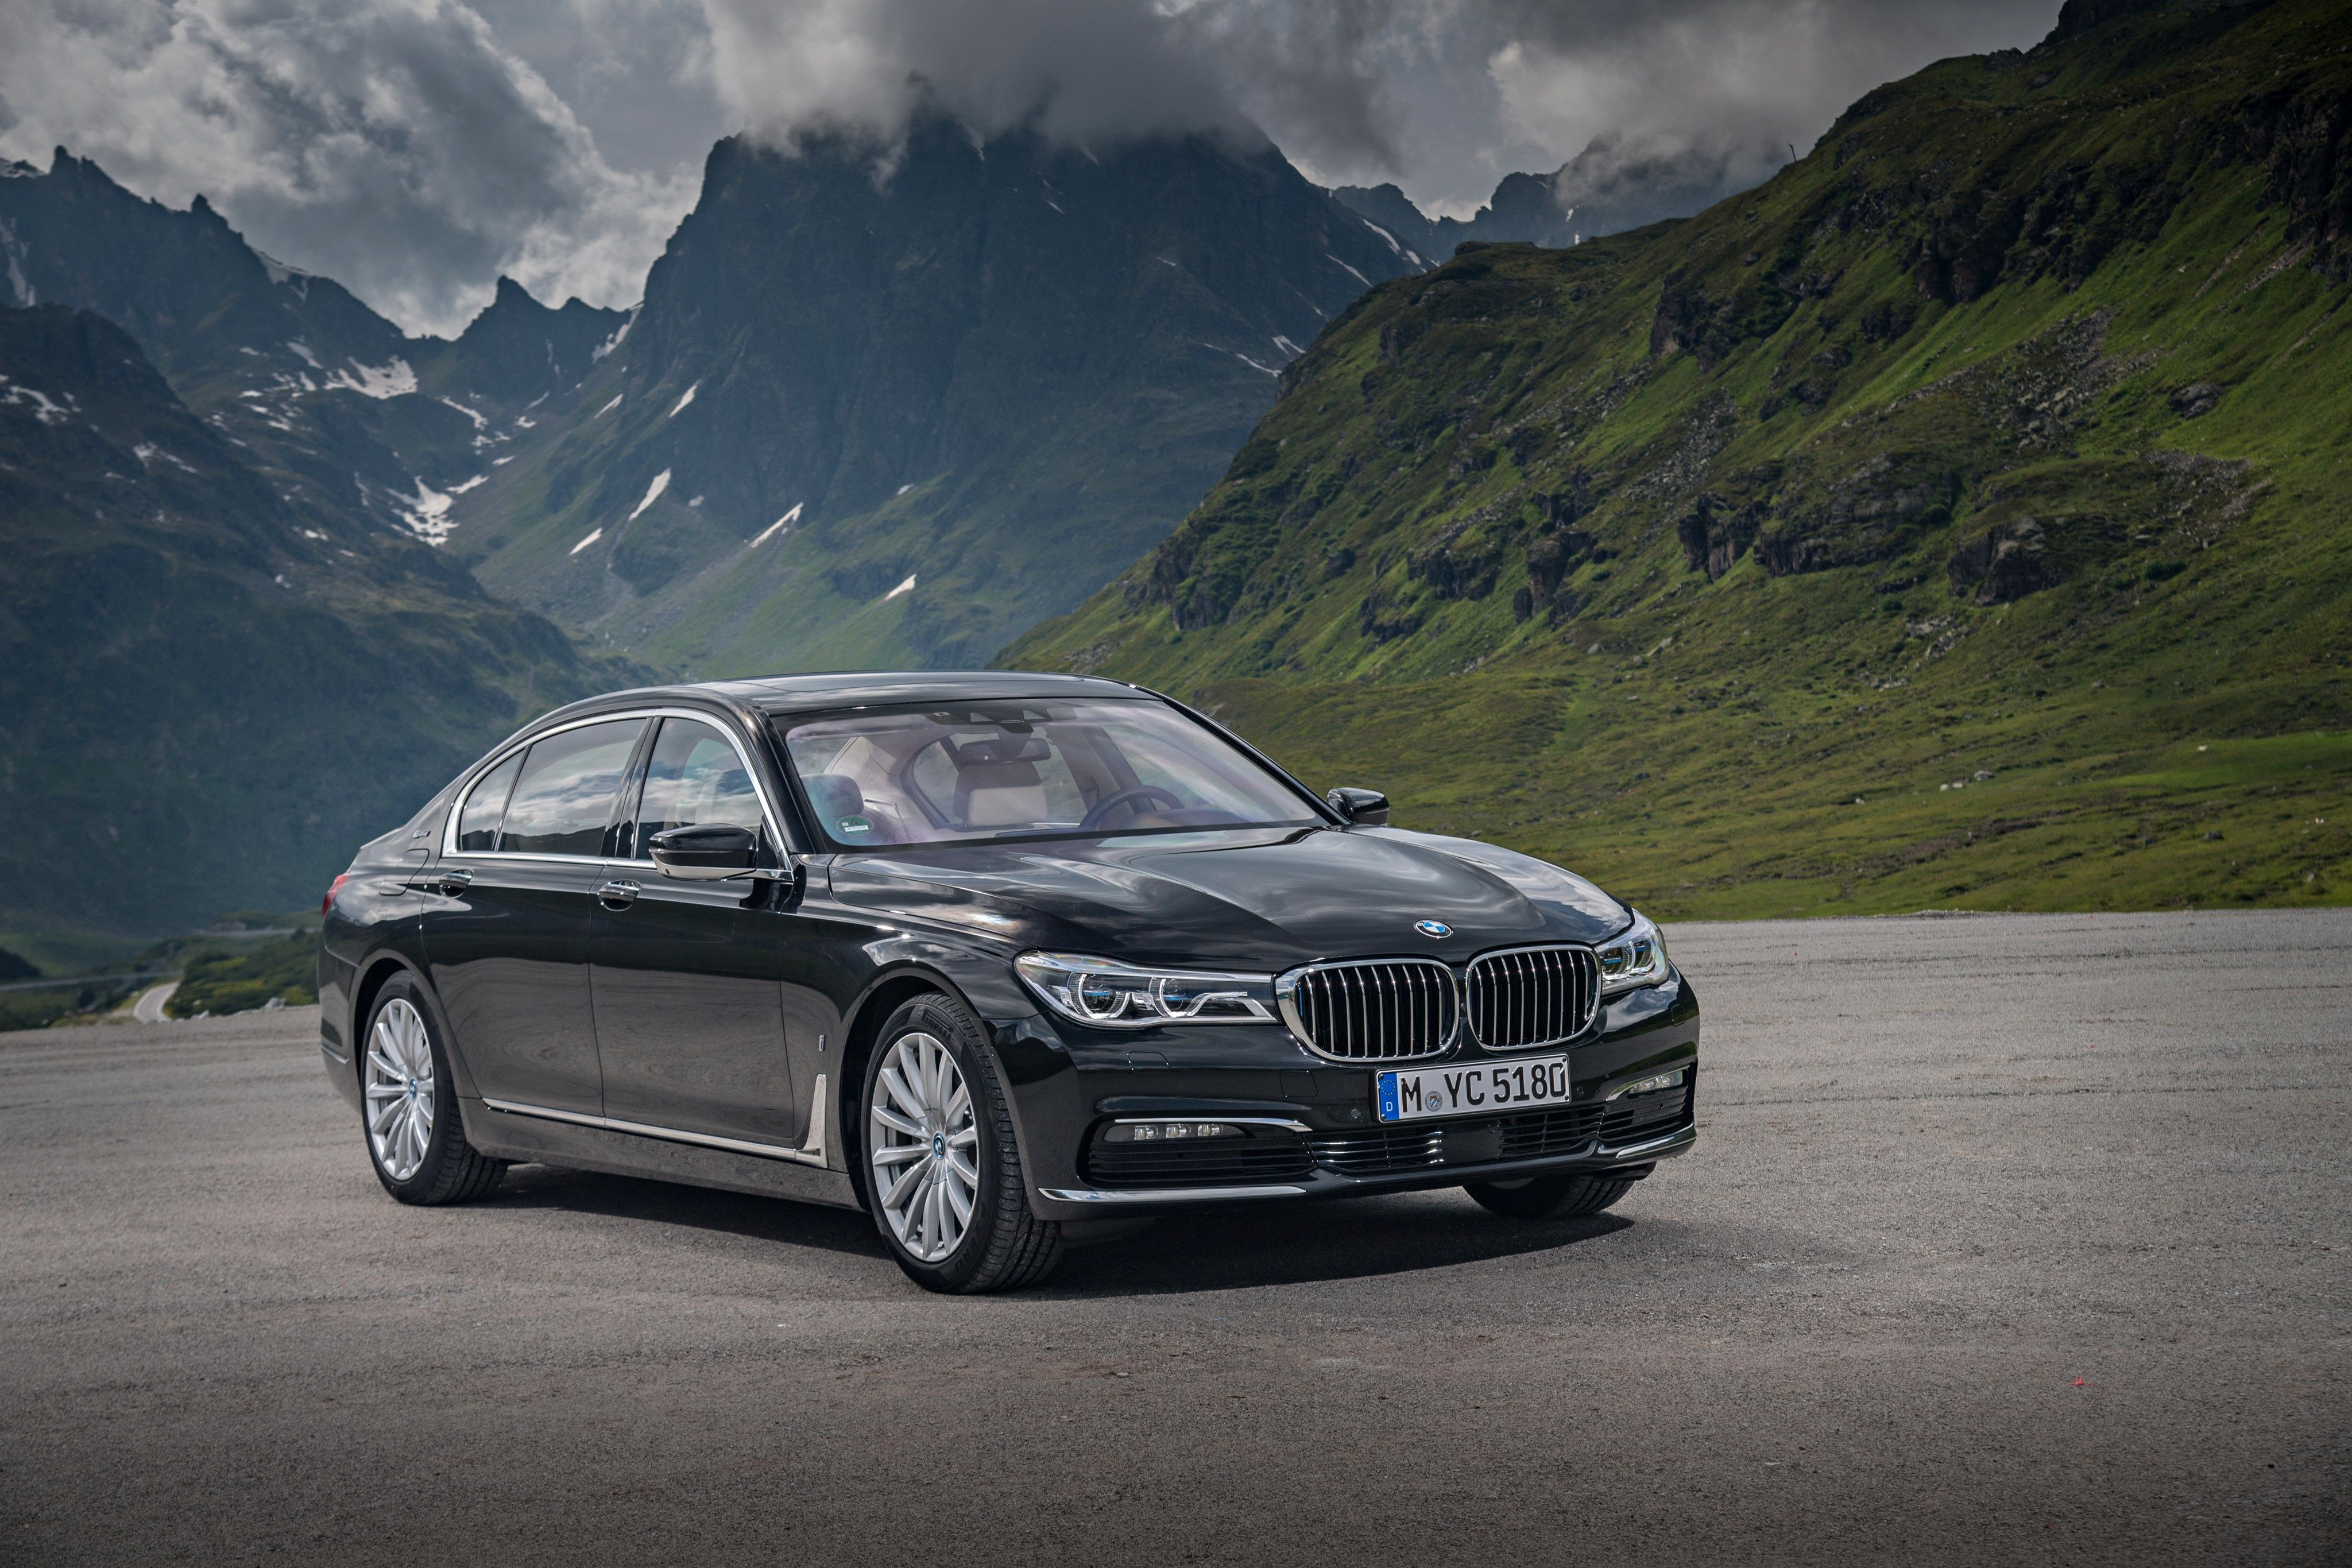 bmw 7 series 4k ultra hd wallpapers » High quality walls